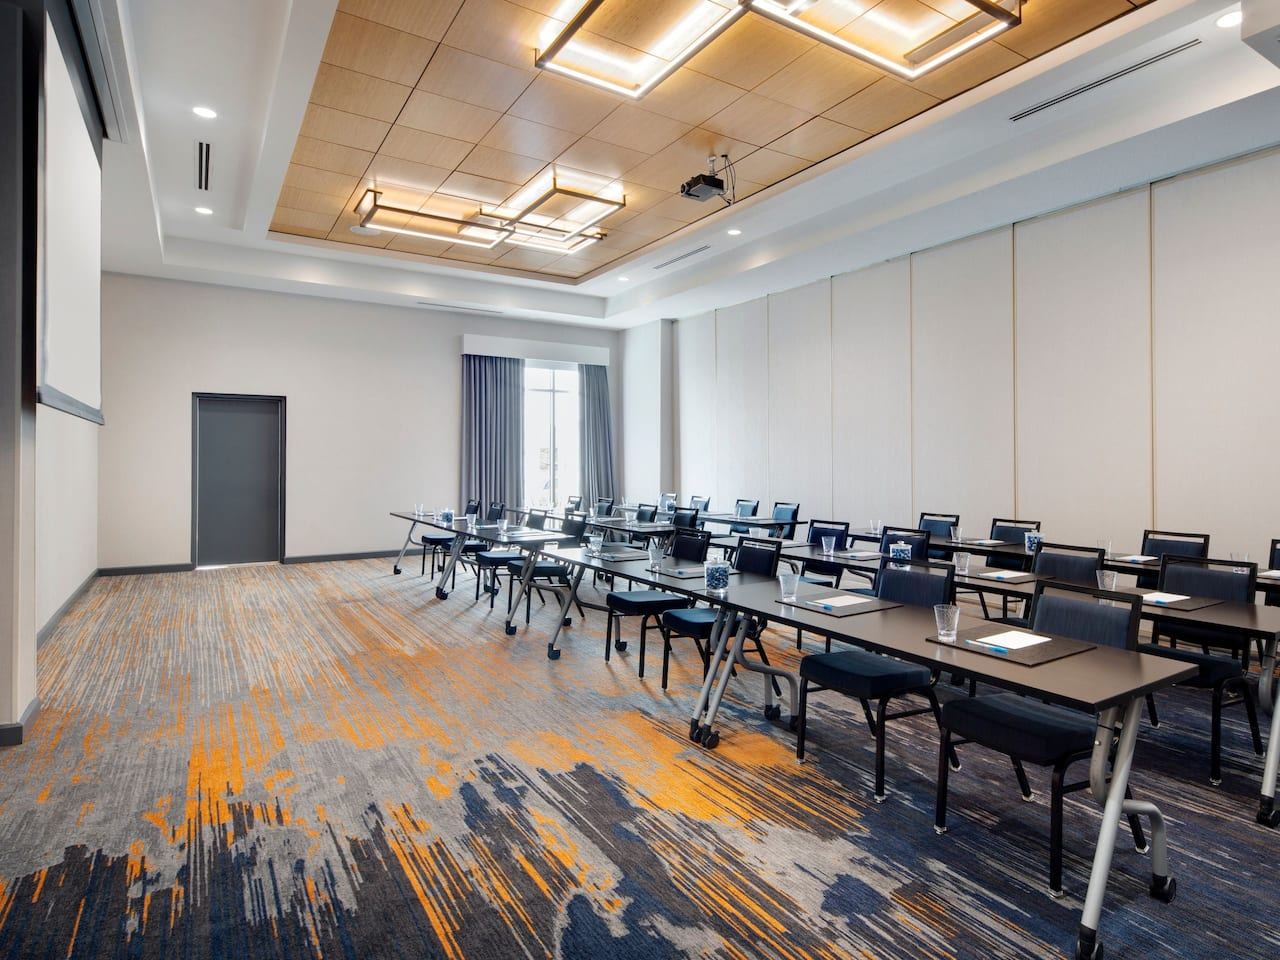 Hyatt House San Jose / Silicon Valley meeting classroom